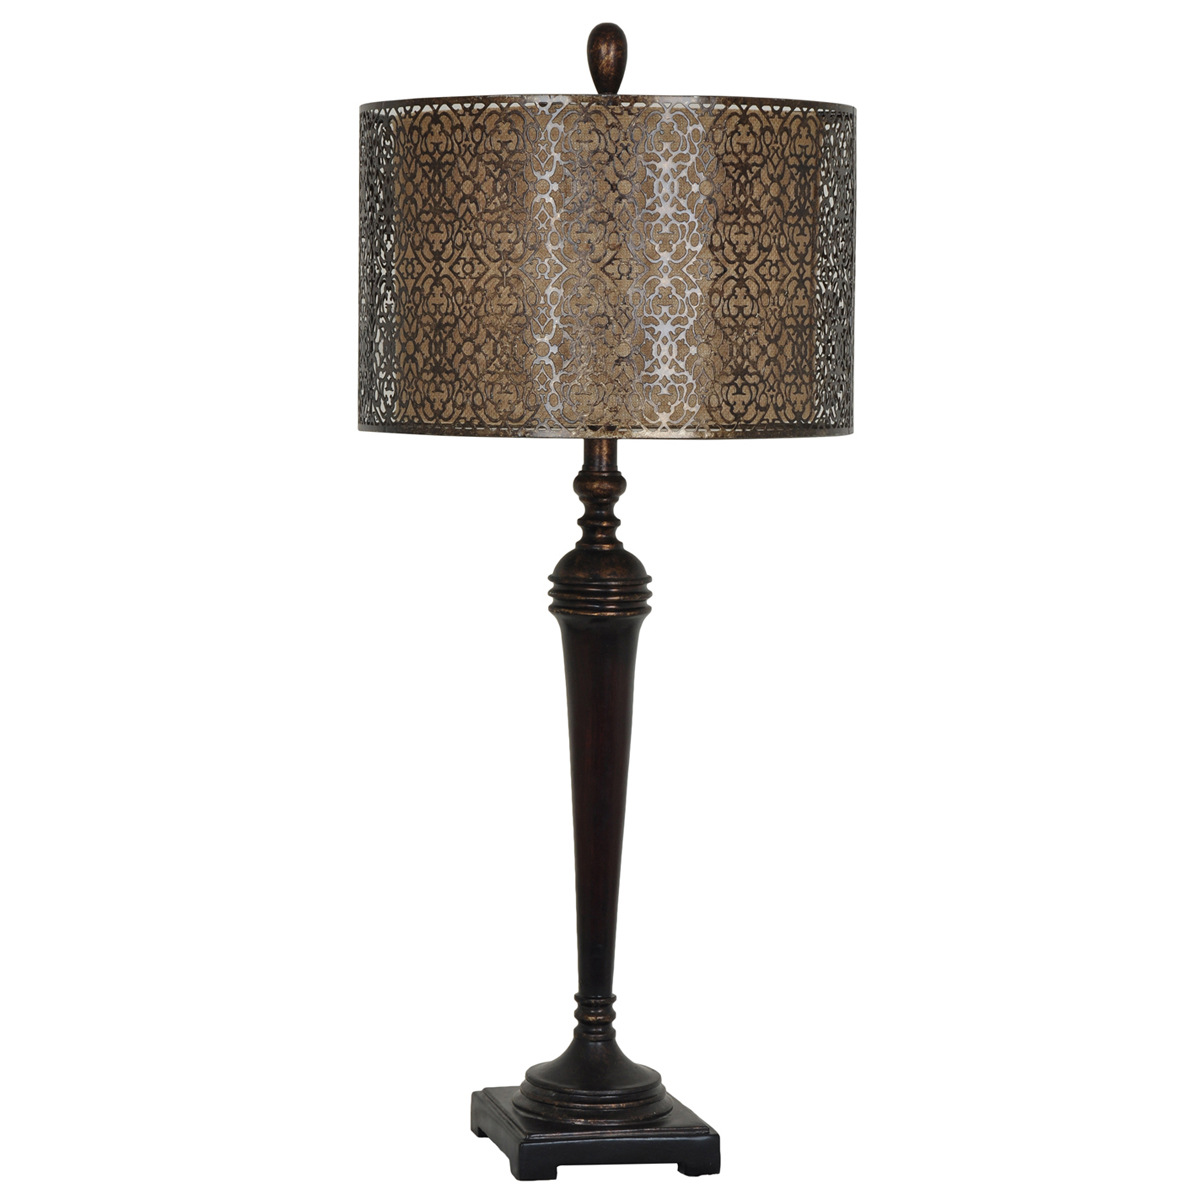 Slender Burnished Table Lamp with Ornate Shade